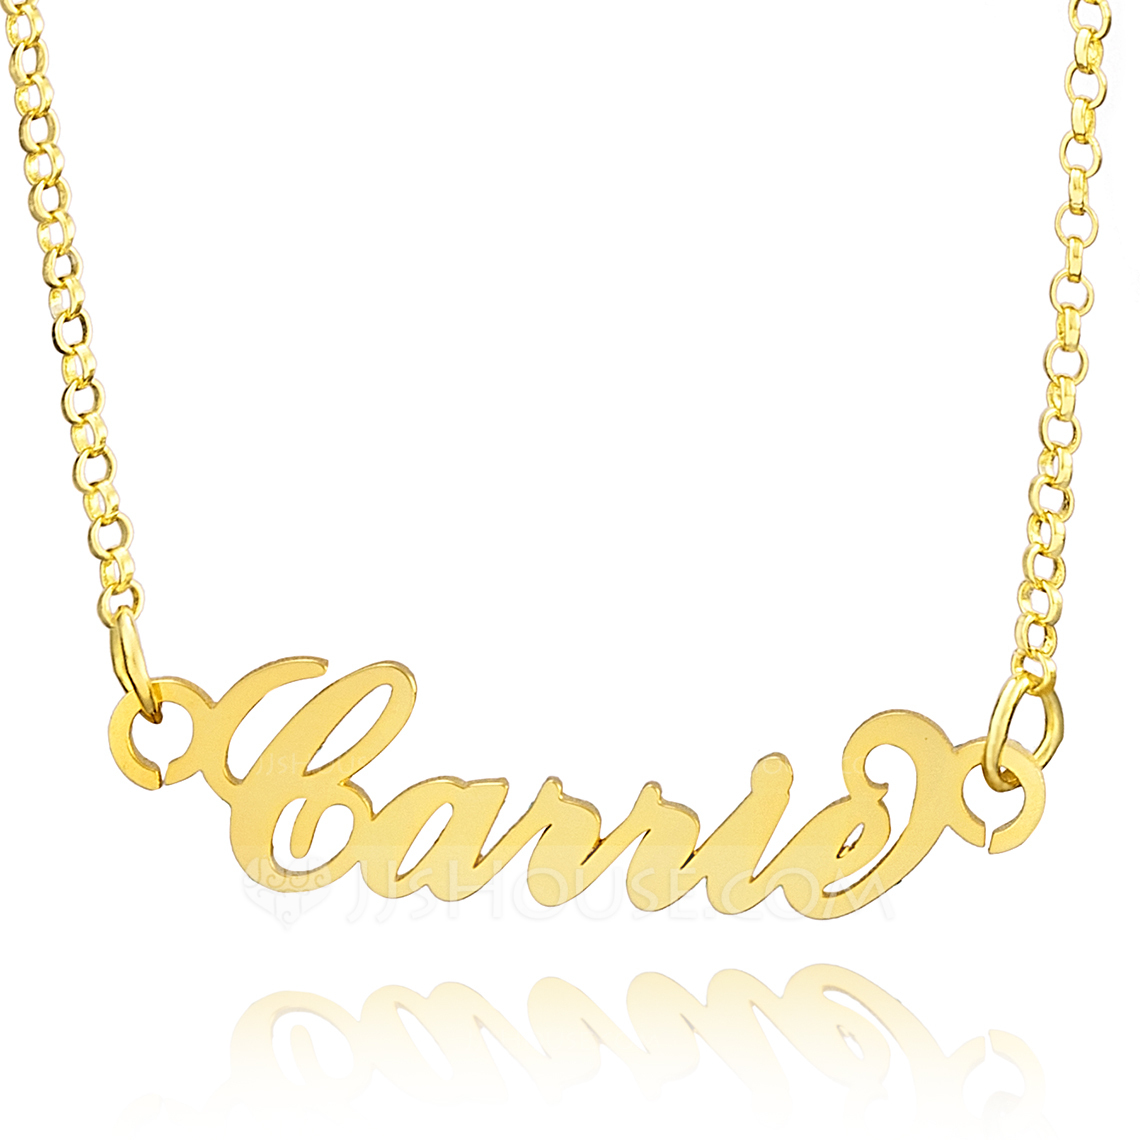 Custom 18k Gold Plated Silver Plate Carrie Name Necklace - Birthday Gifts Mother's Day Gifts